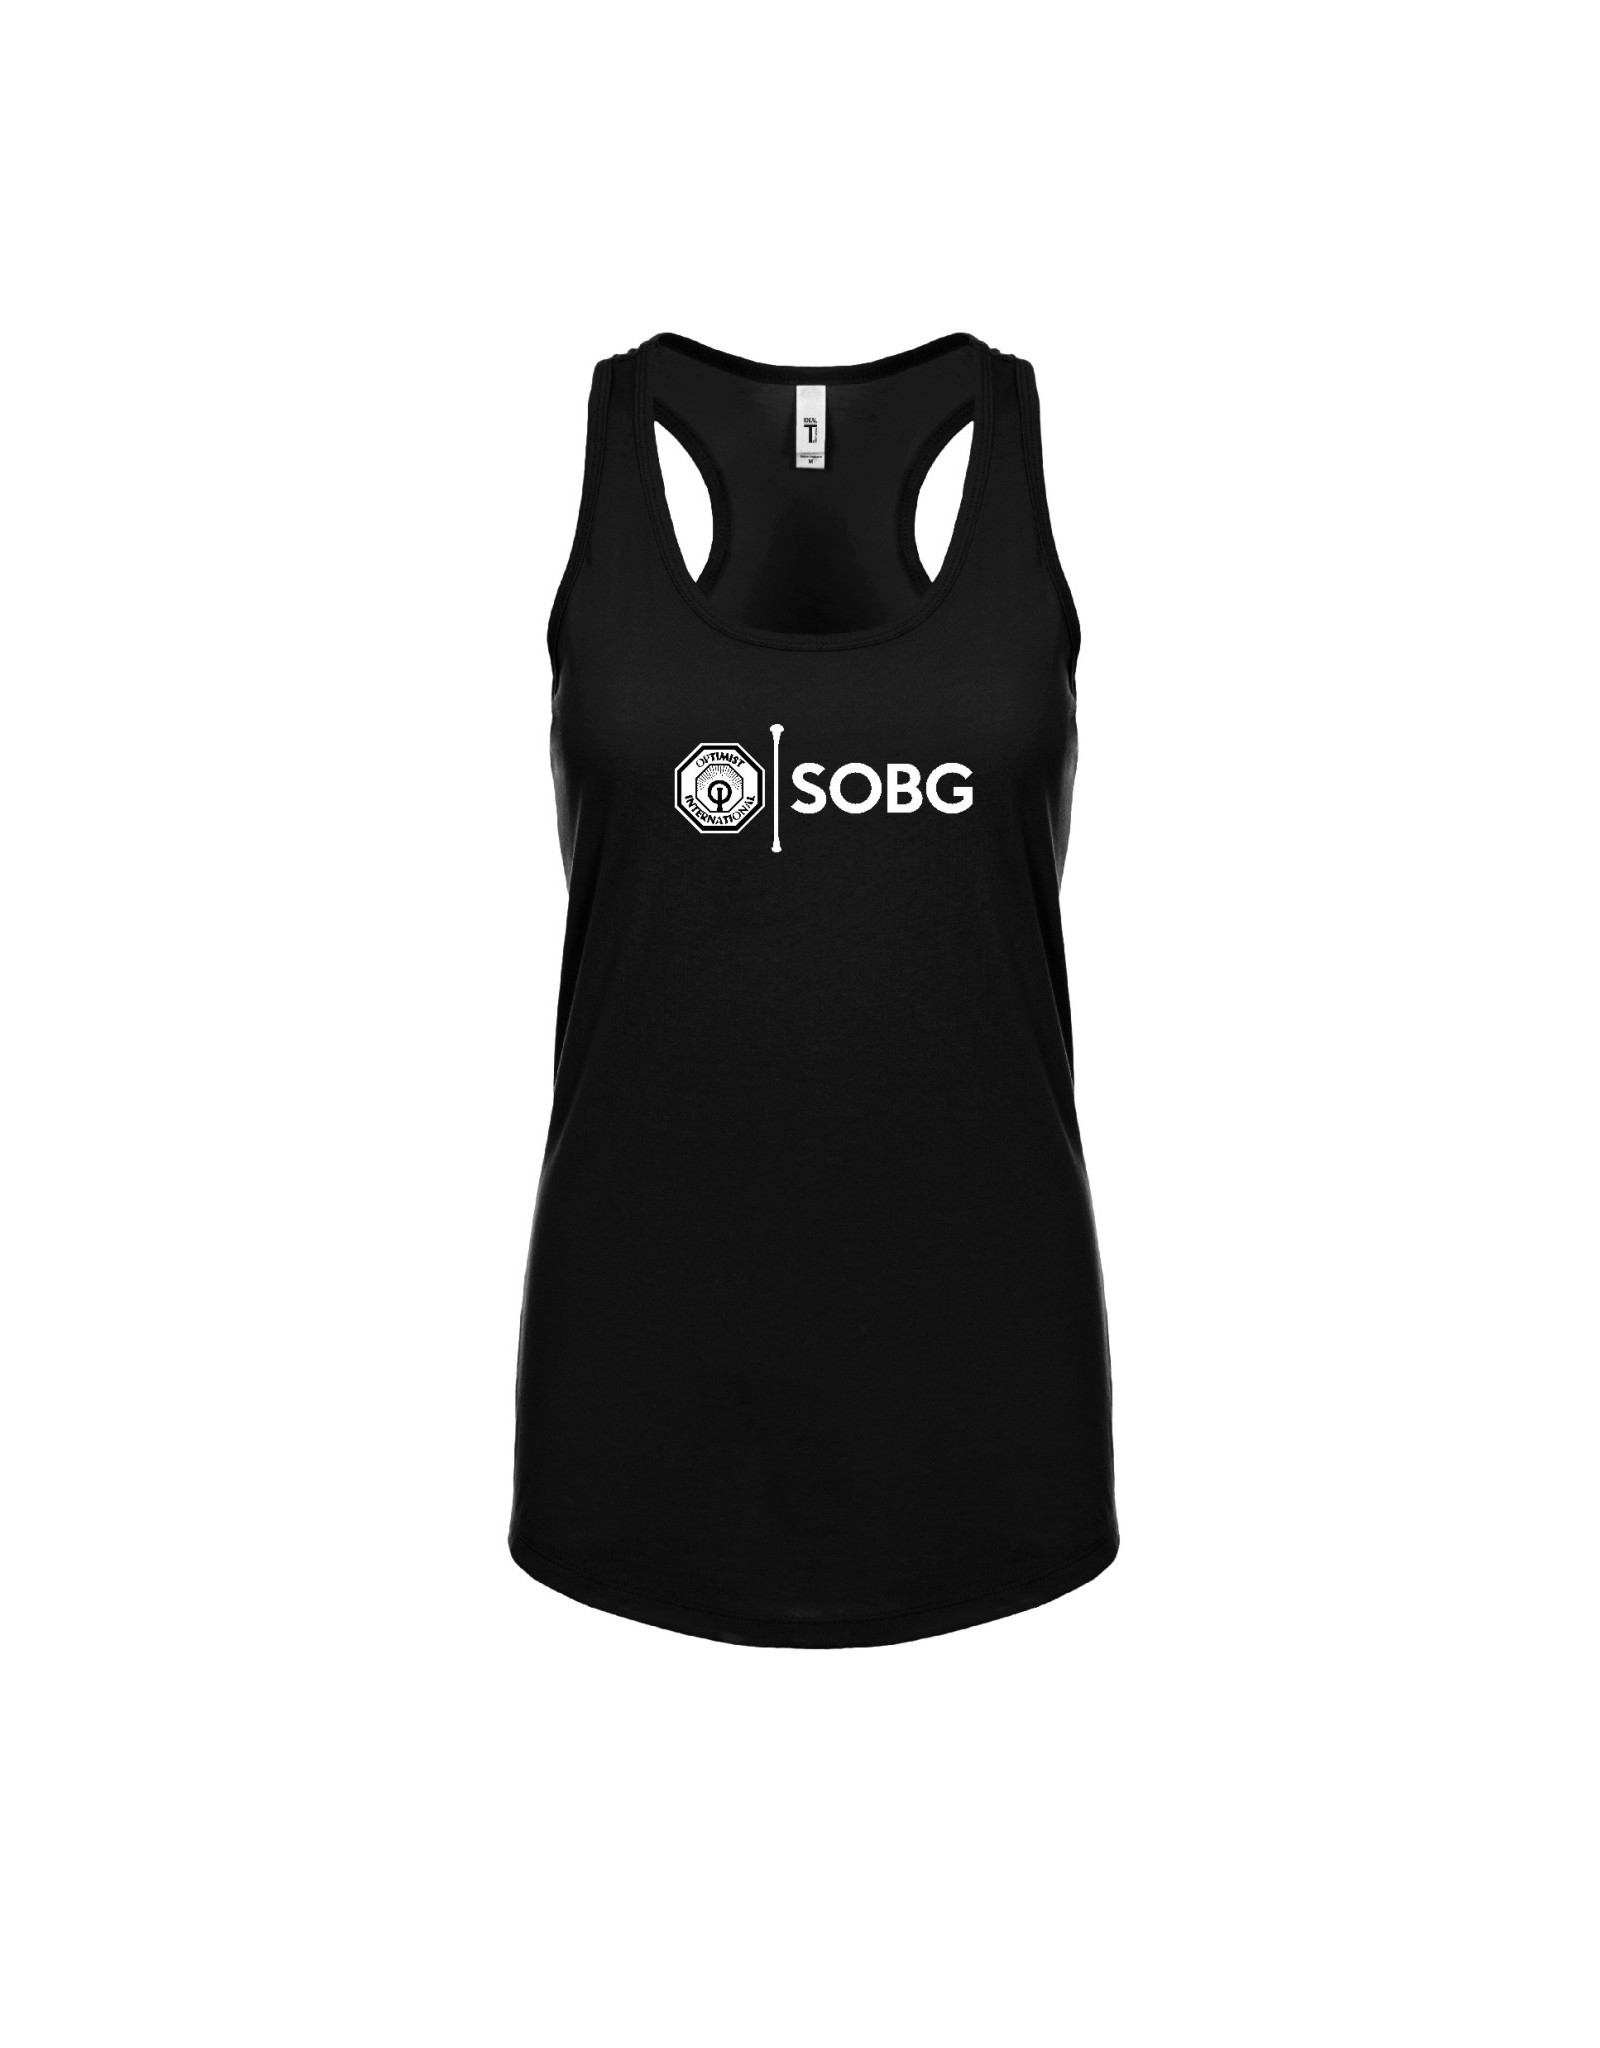 Next Level Apparel SOBG Racerback Tank